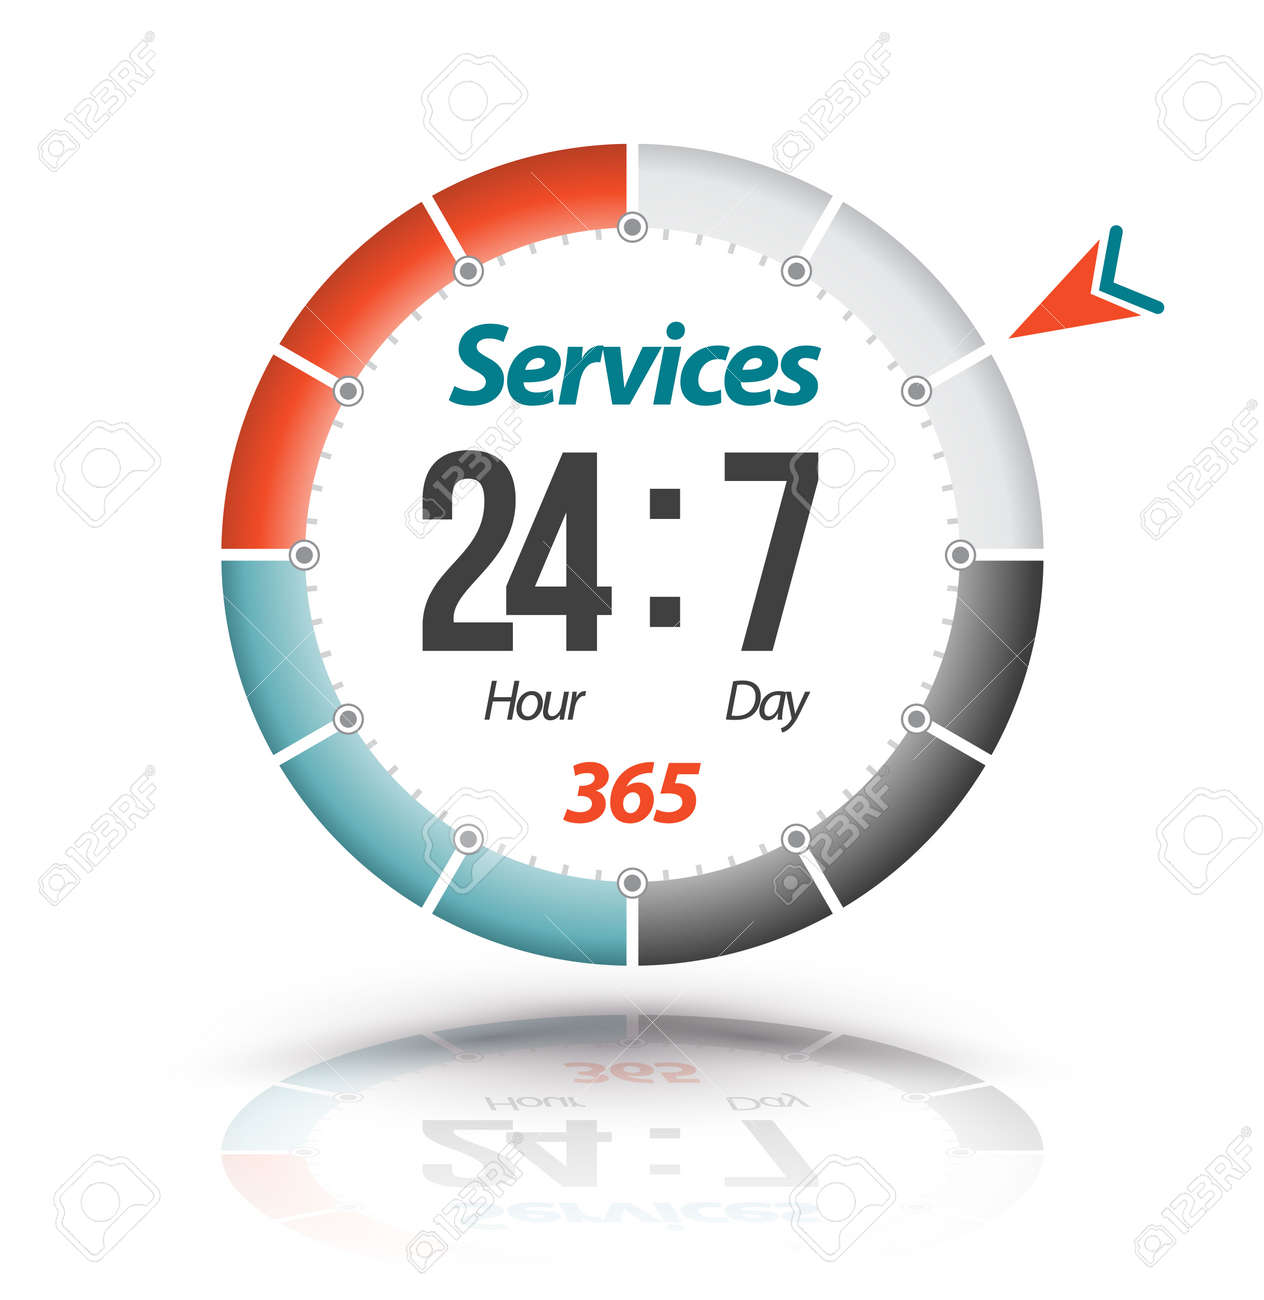 Circle banner Services 24hr 7day 365. Vector illustration. - 61413131